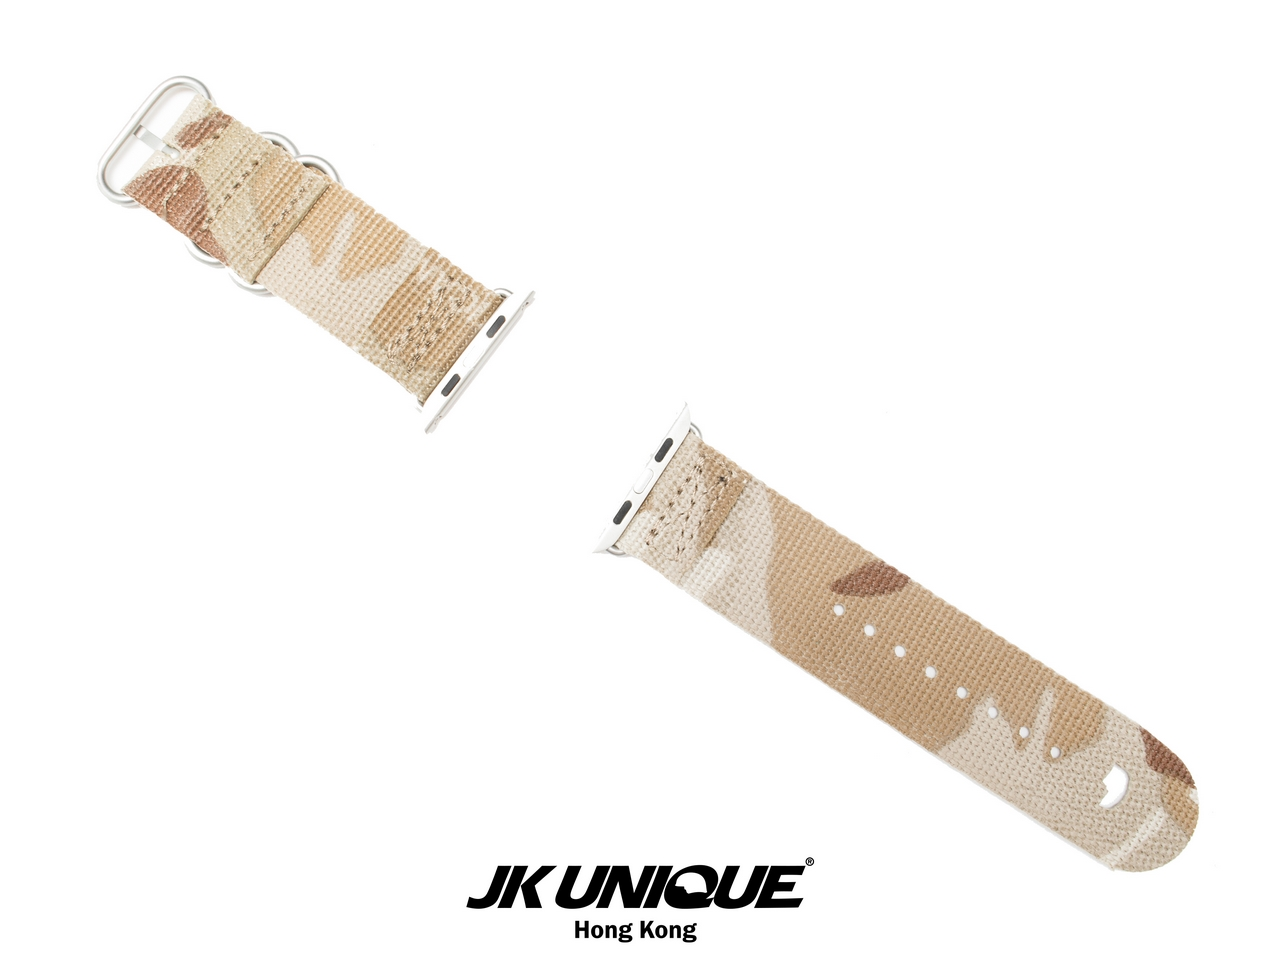 JK-UNIQUE-CAMO-NATO-Apple-Watch-Strap-42mm-SV-Multicam-Arid-2 (1280).jpg